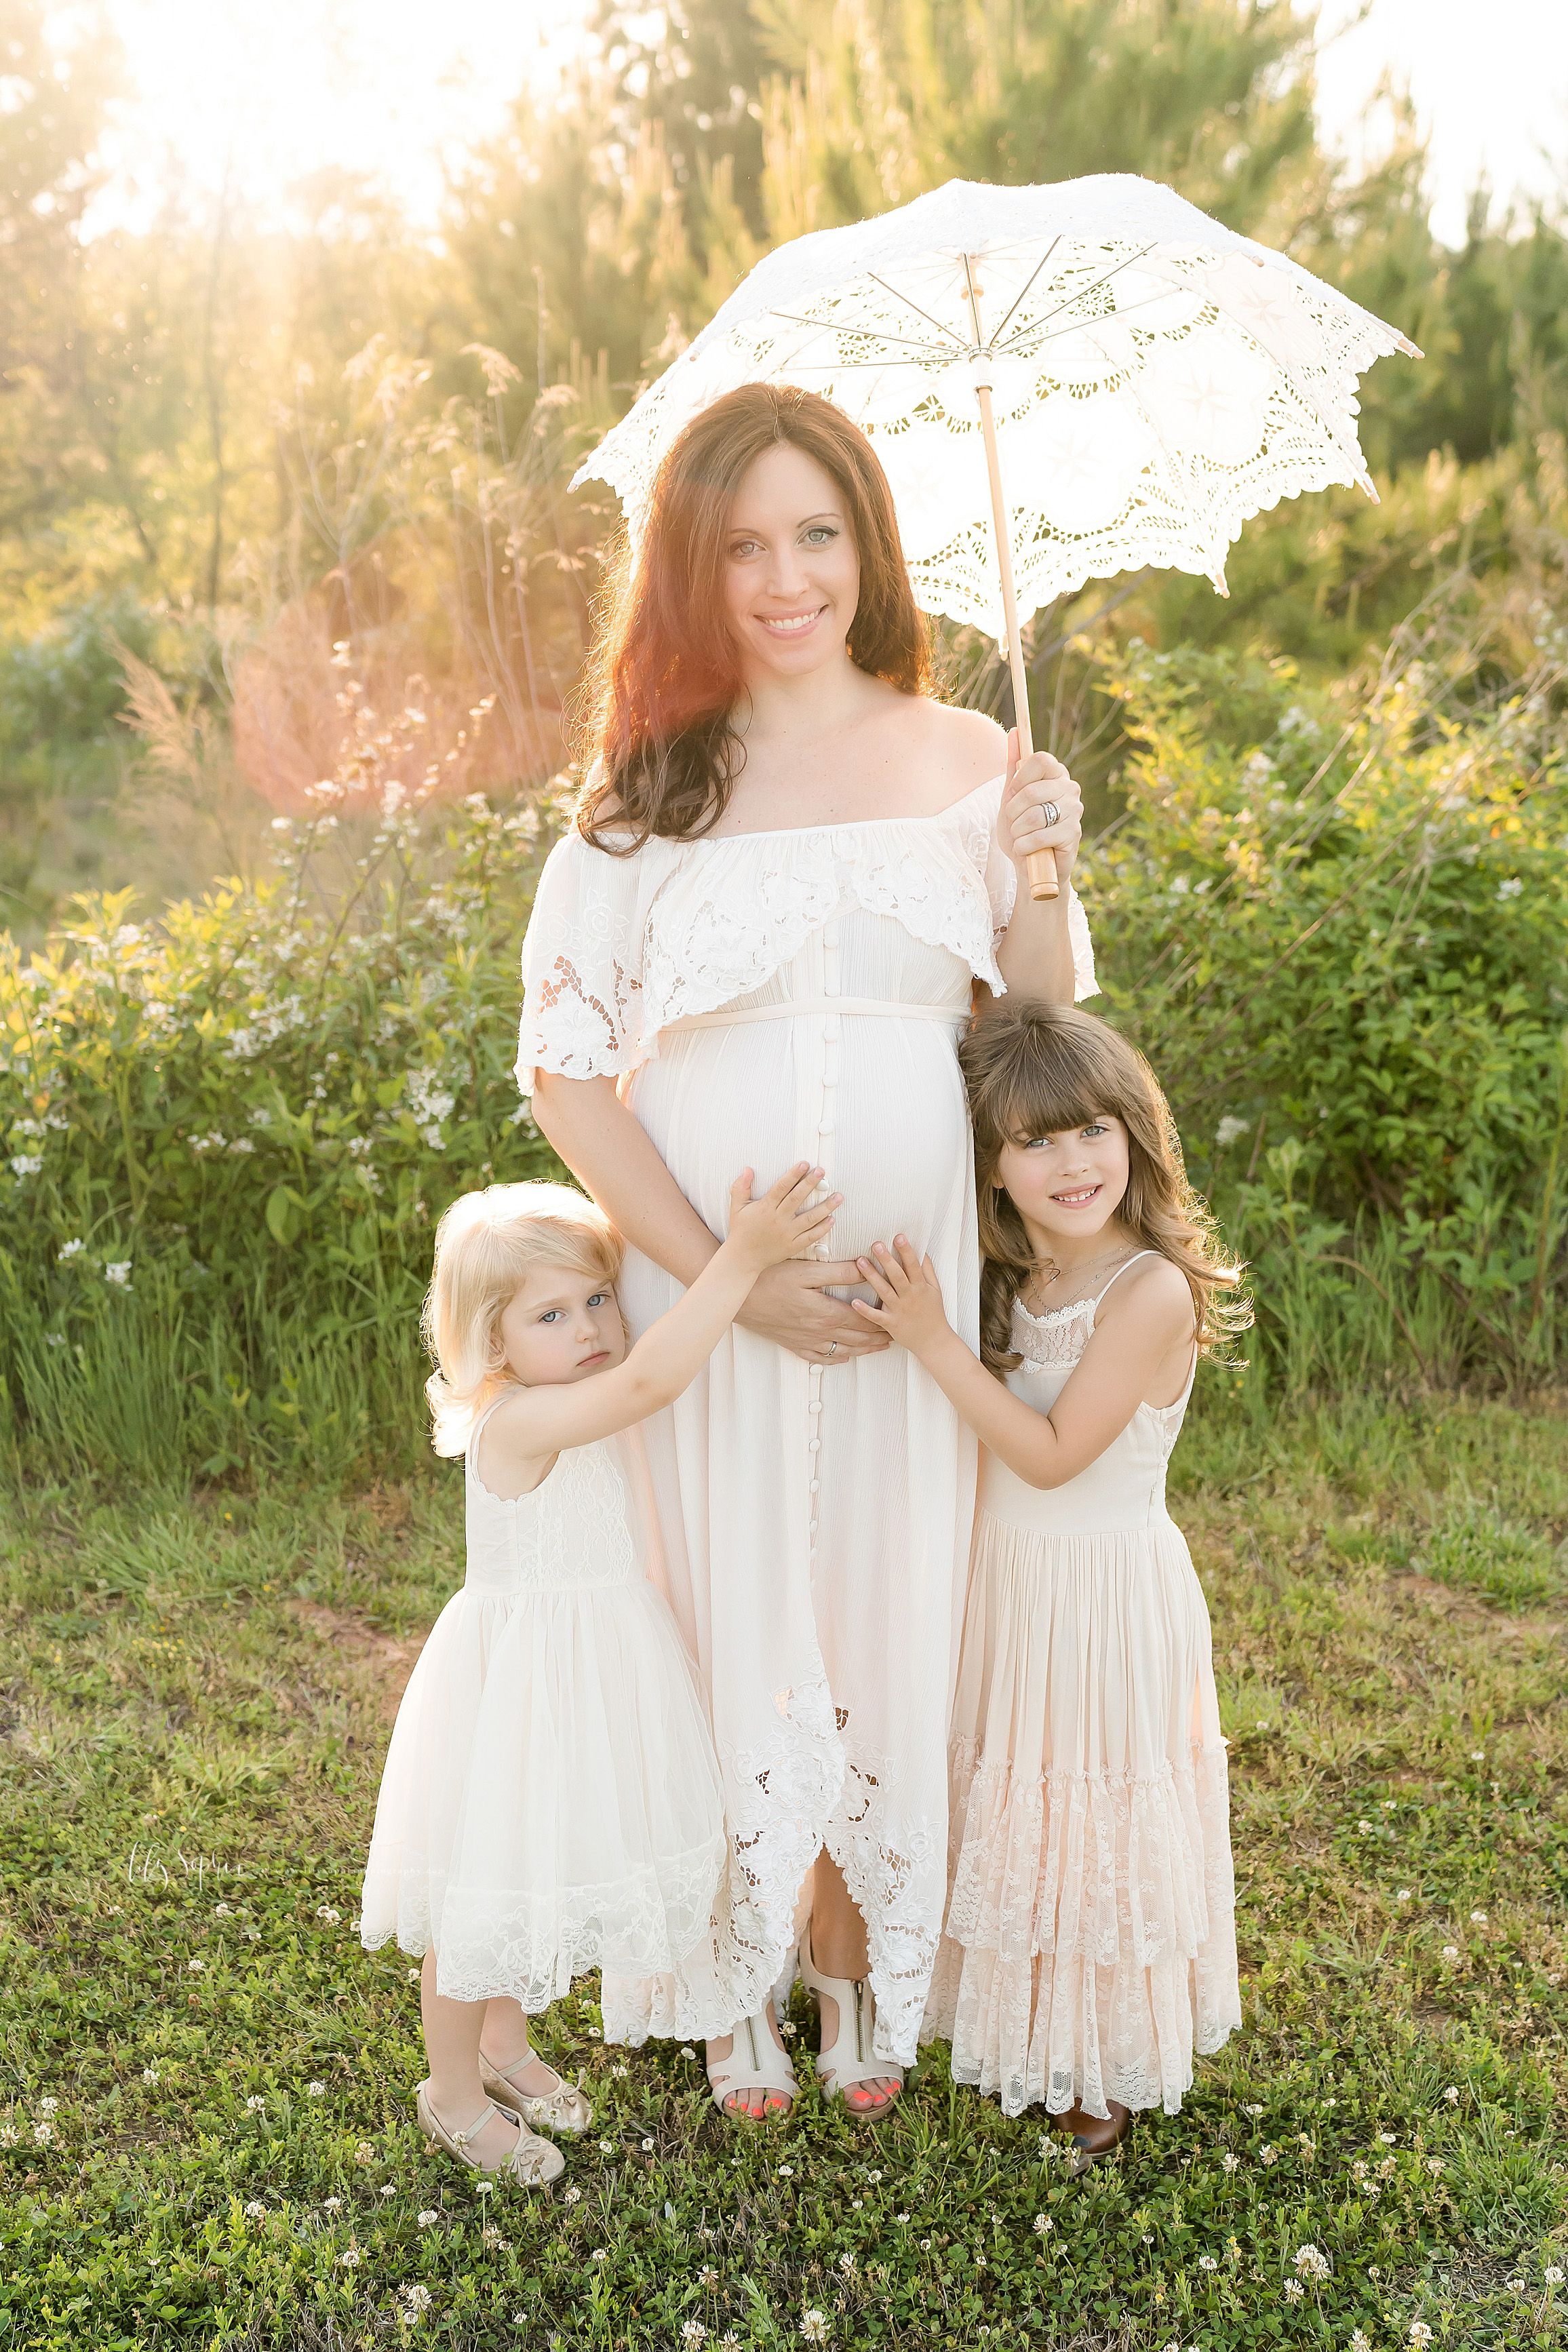 Family photo of a pregnant mother and her two children as they embrace the baby in utero while standing at sunset in a field in Atlanta.